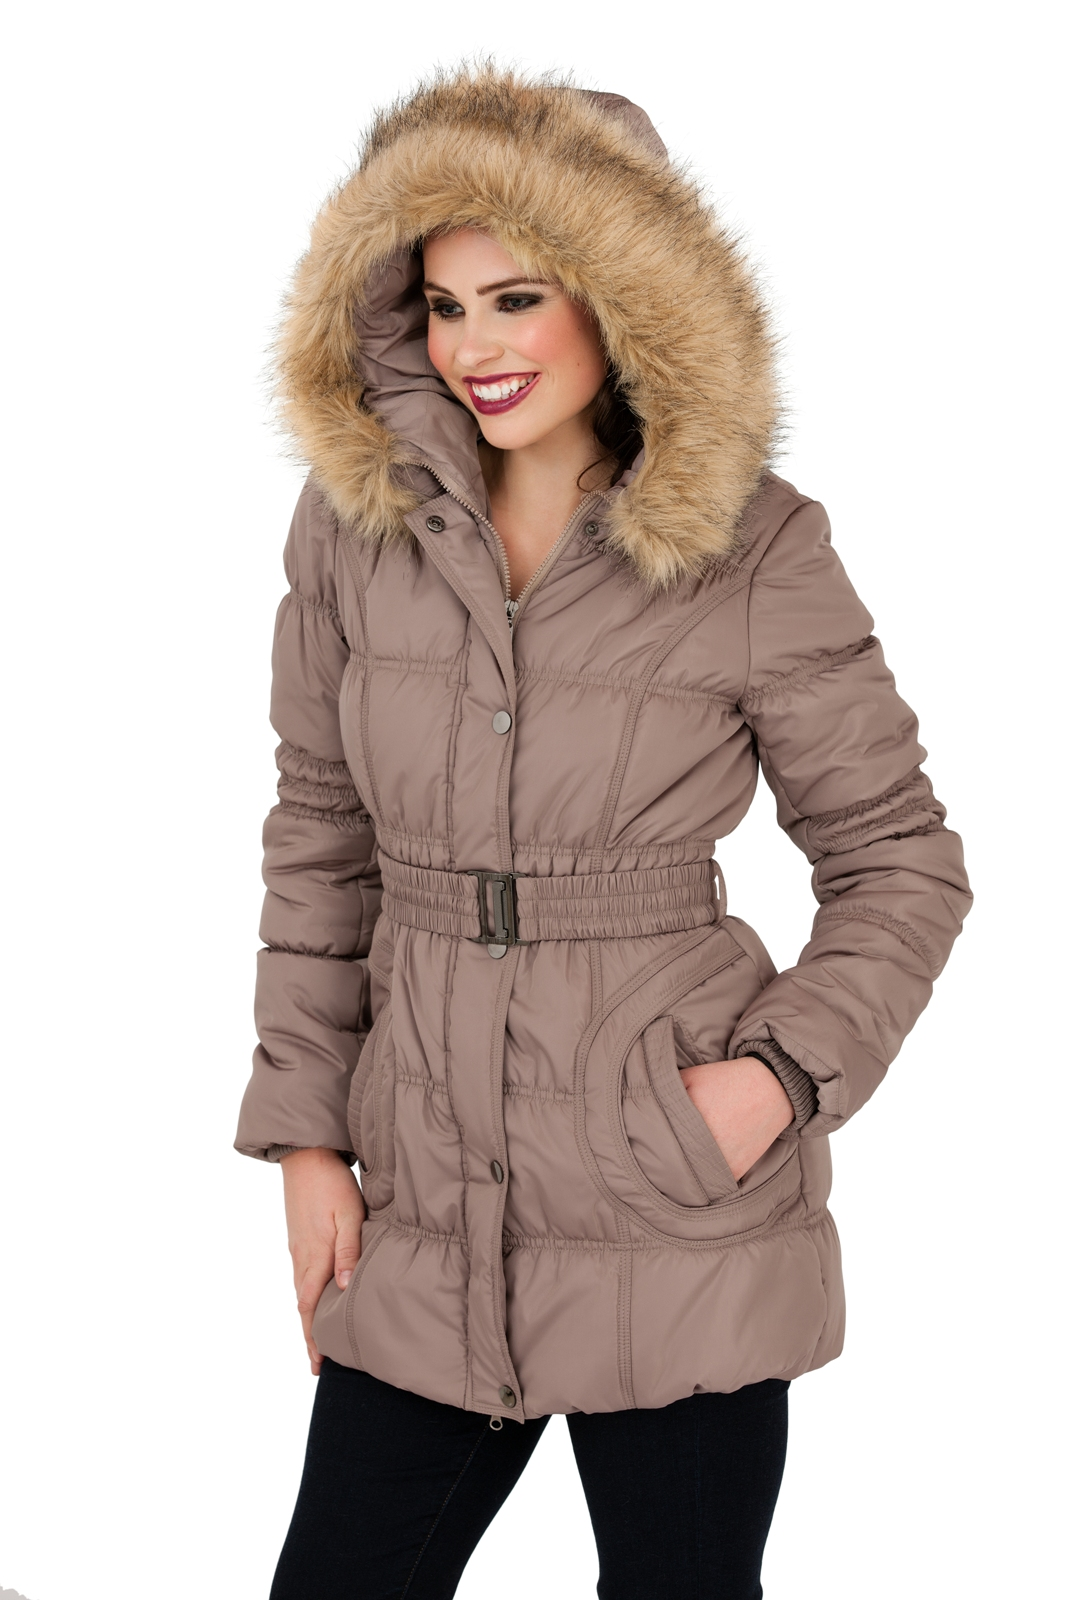 Faux Fur Hooded Jackets. Showing 48 of results that match your query. Search Product Result. Product - Time and Tru Women's Heavyweight Puffer Coat With Faux Fur-Trim Hood. Product Image. Price $ Product Title. Time and Tru Women's Heavyweight Puffer Coat With Faux Fur .